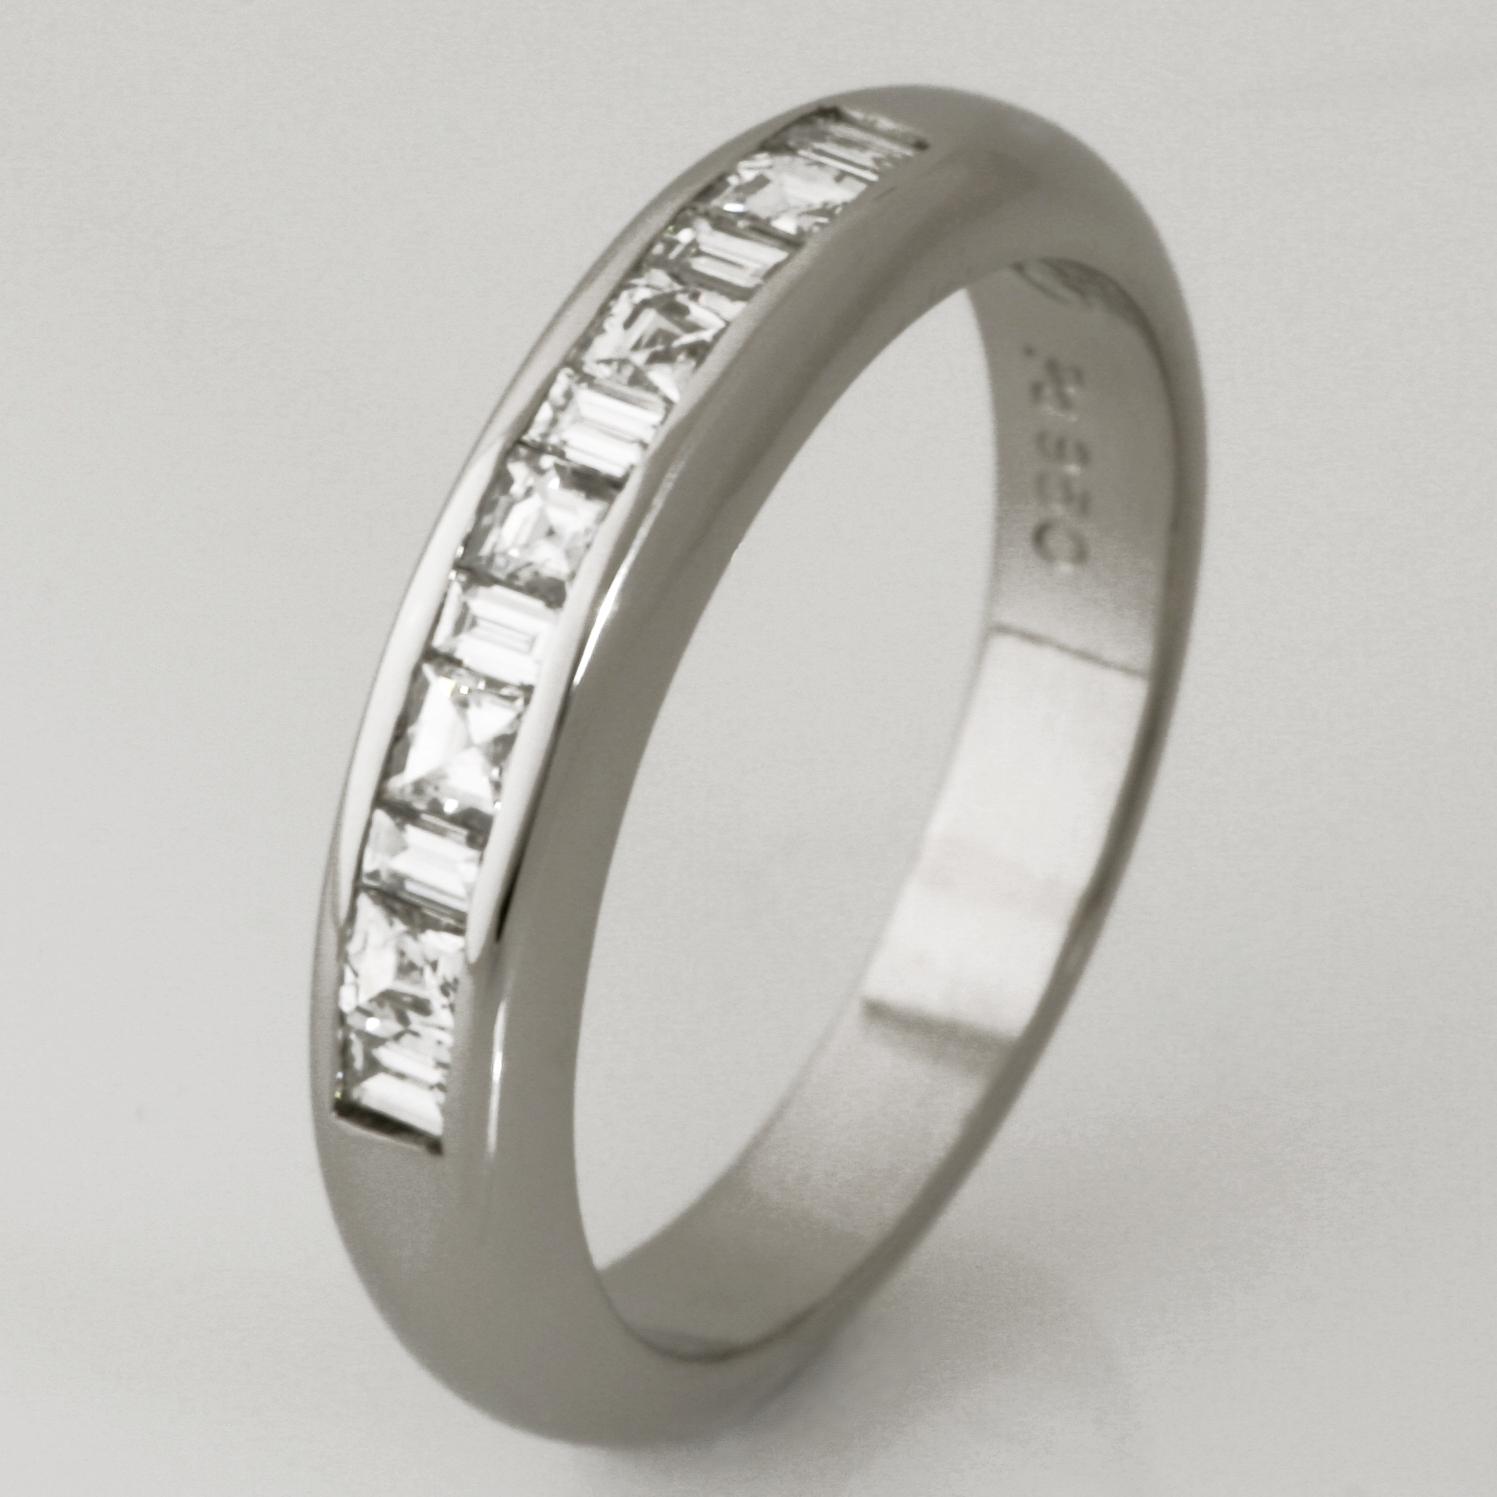 Handmade ladies palladium 'Tycoon' cut and baguette diamond eternity ring